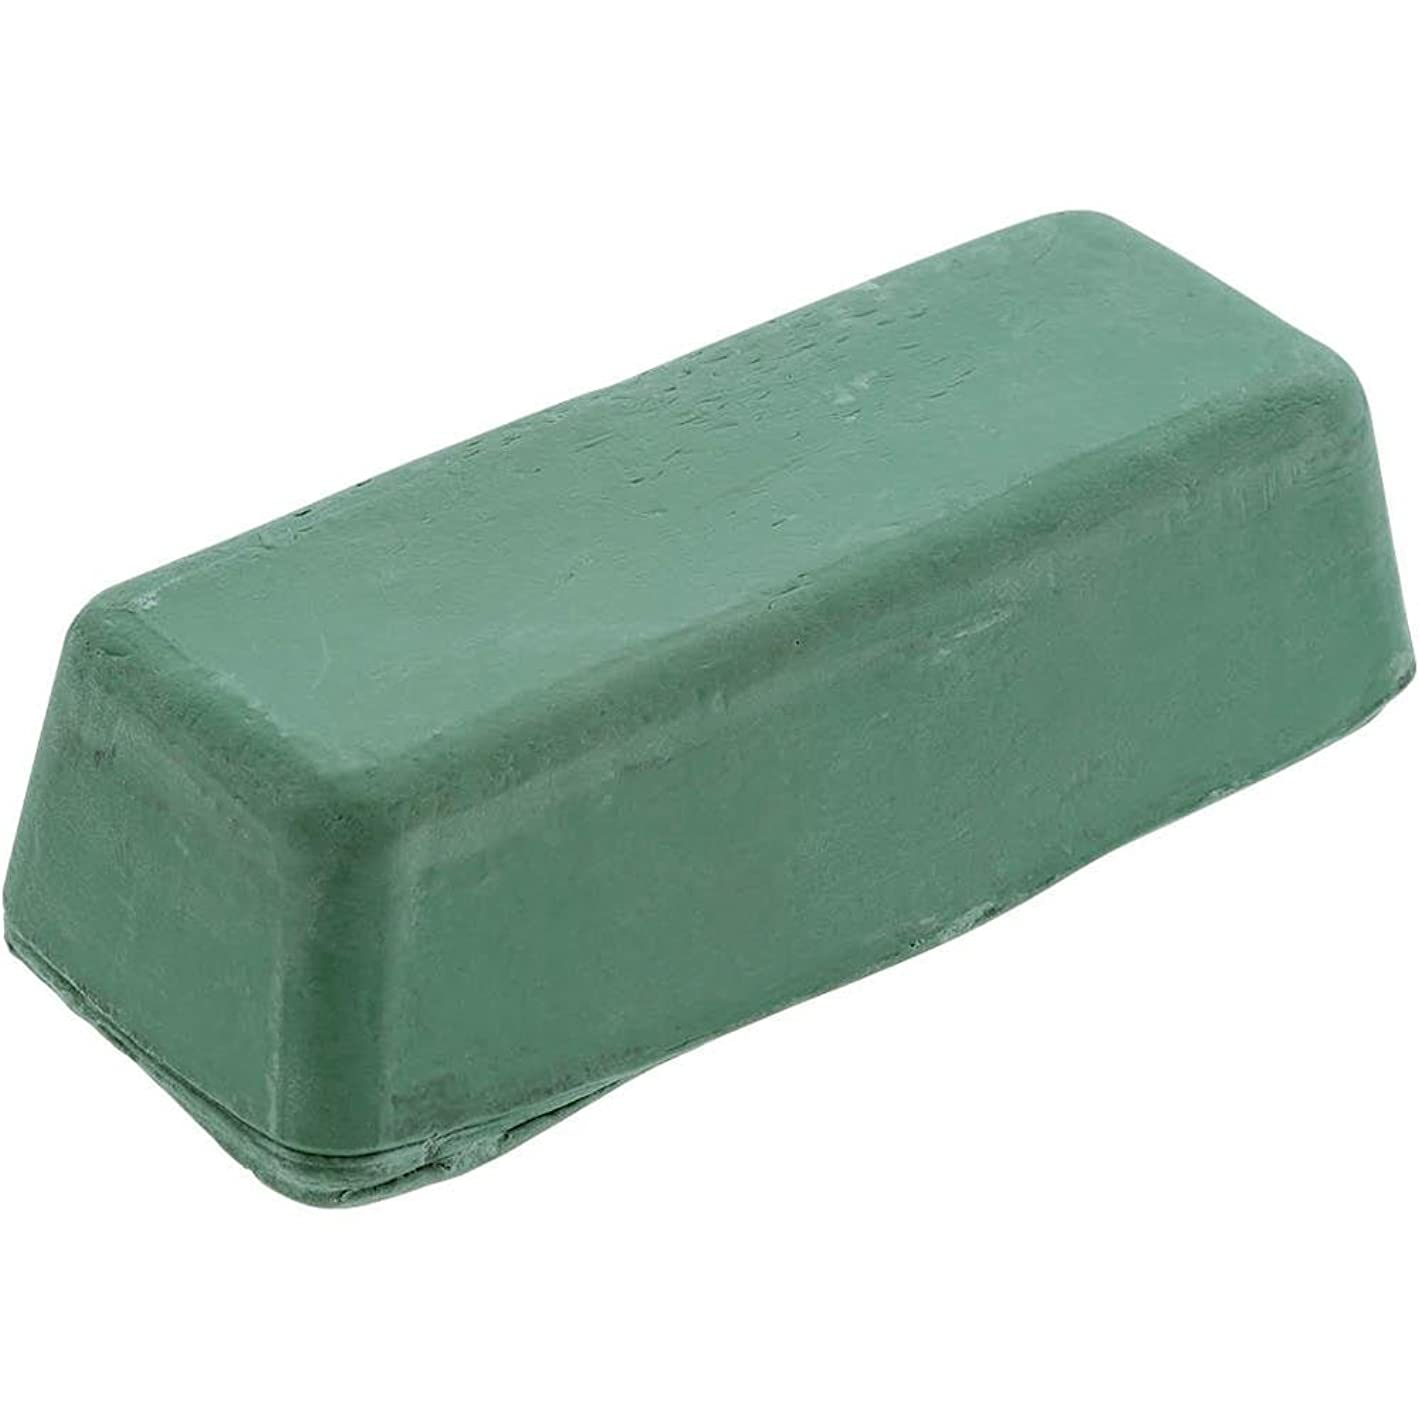 Woodstock D2902 1-Pound Extra Fine Buffing Compound, Green j41951064780851